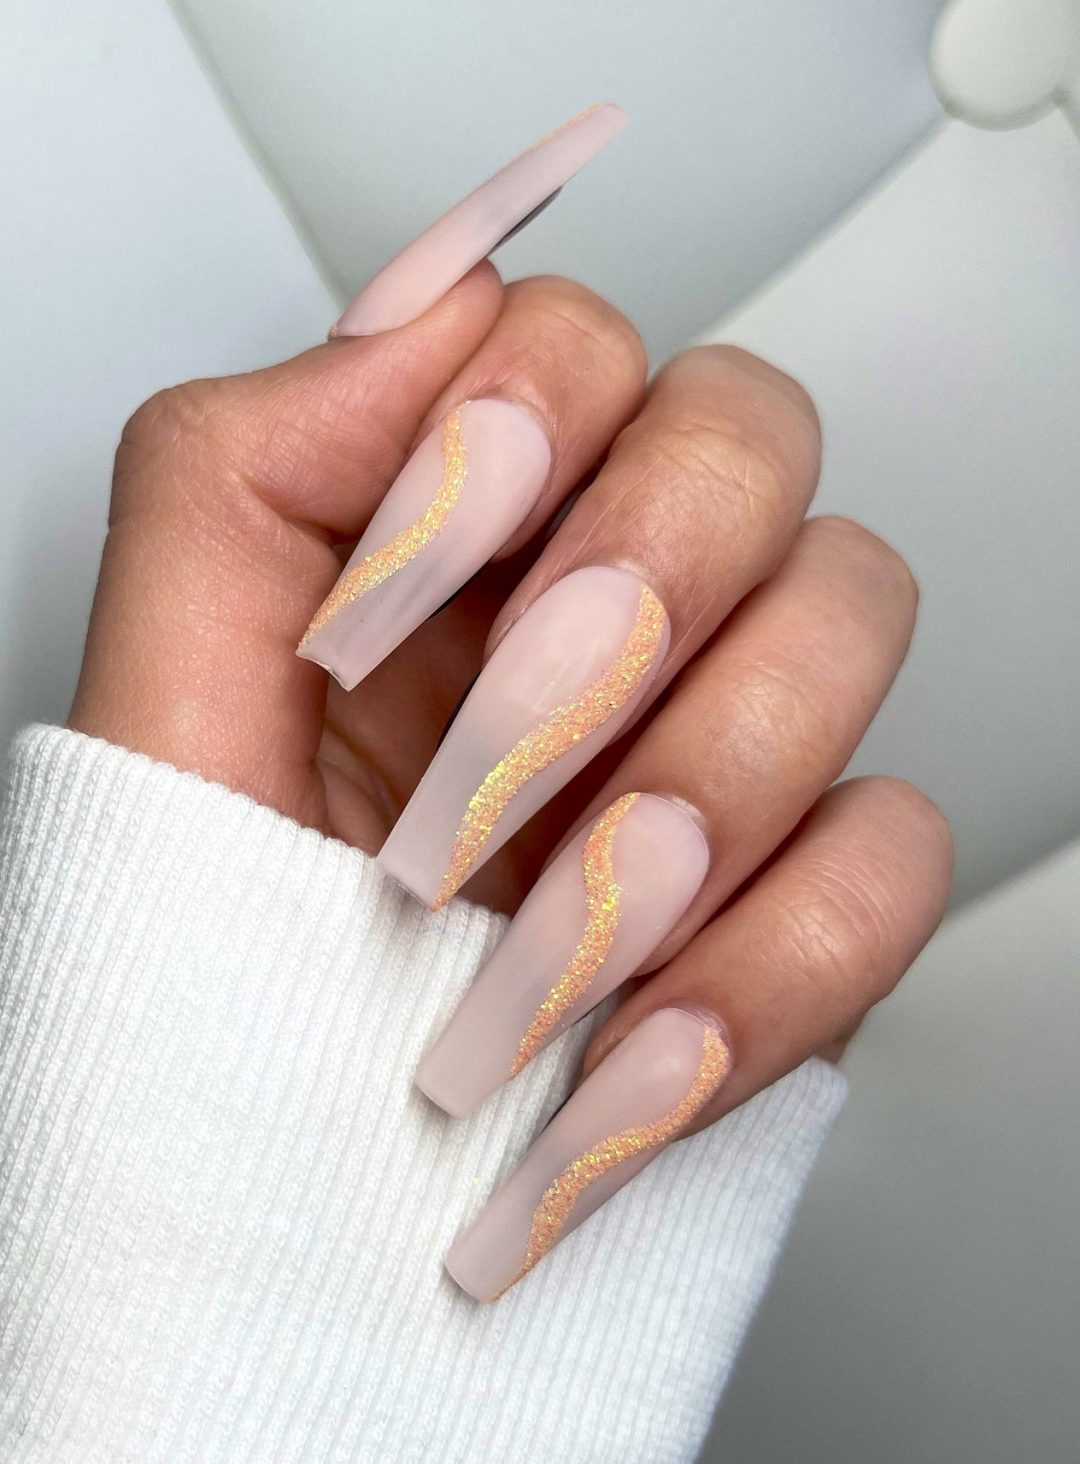 Long abstract nude coffin nails with gold glitter swirls